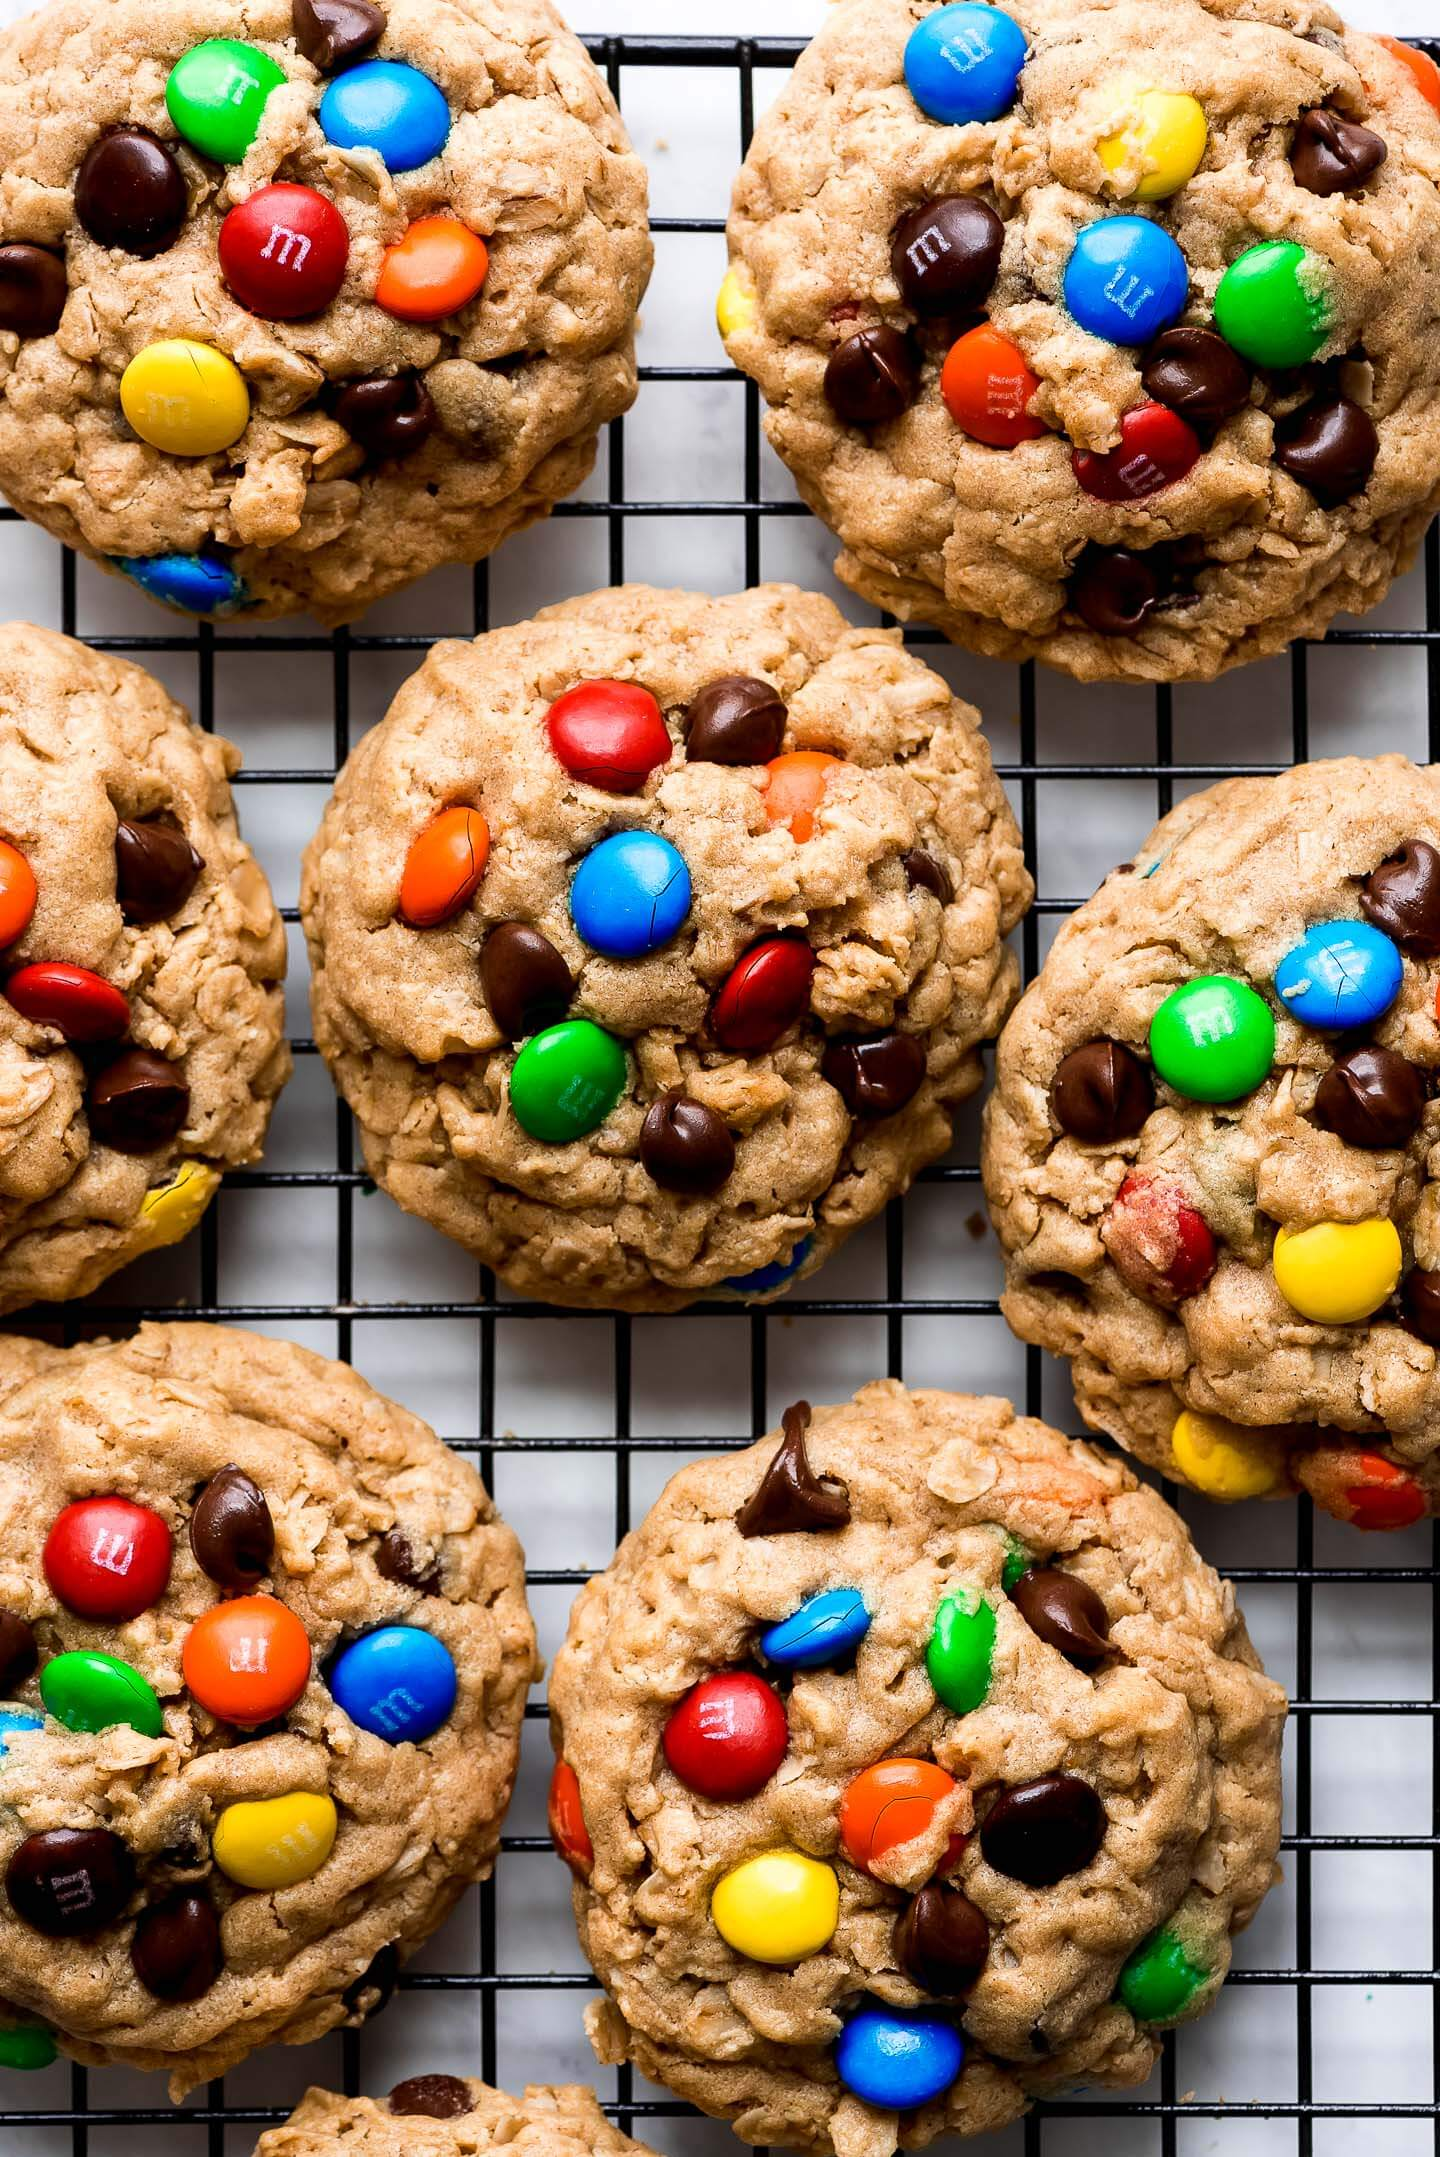 Monster Cookies on a cooking rack topped with chocolate chips and colorful M&M's.